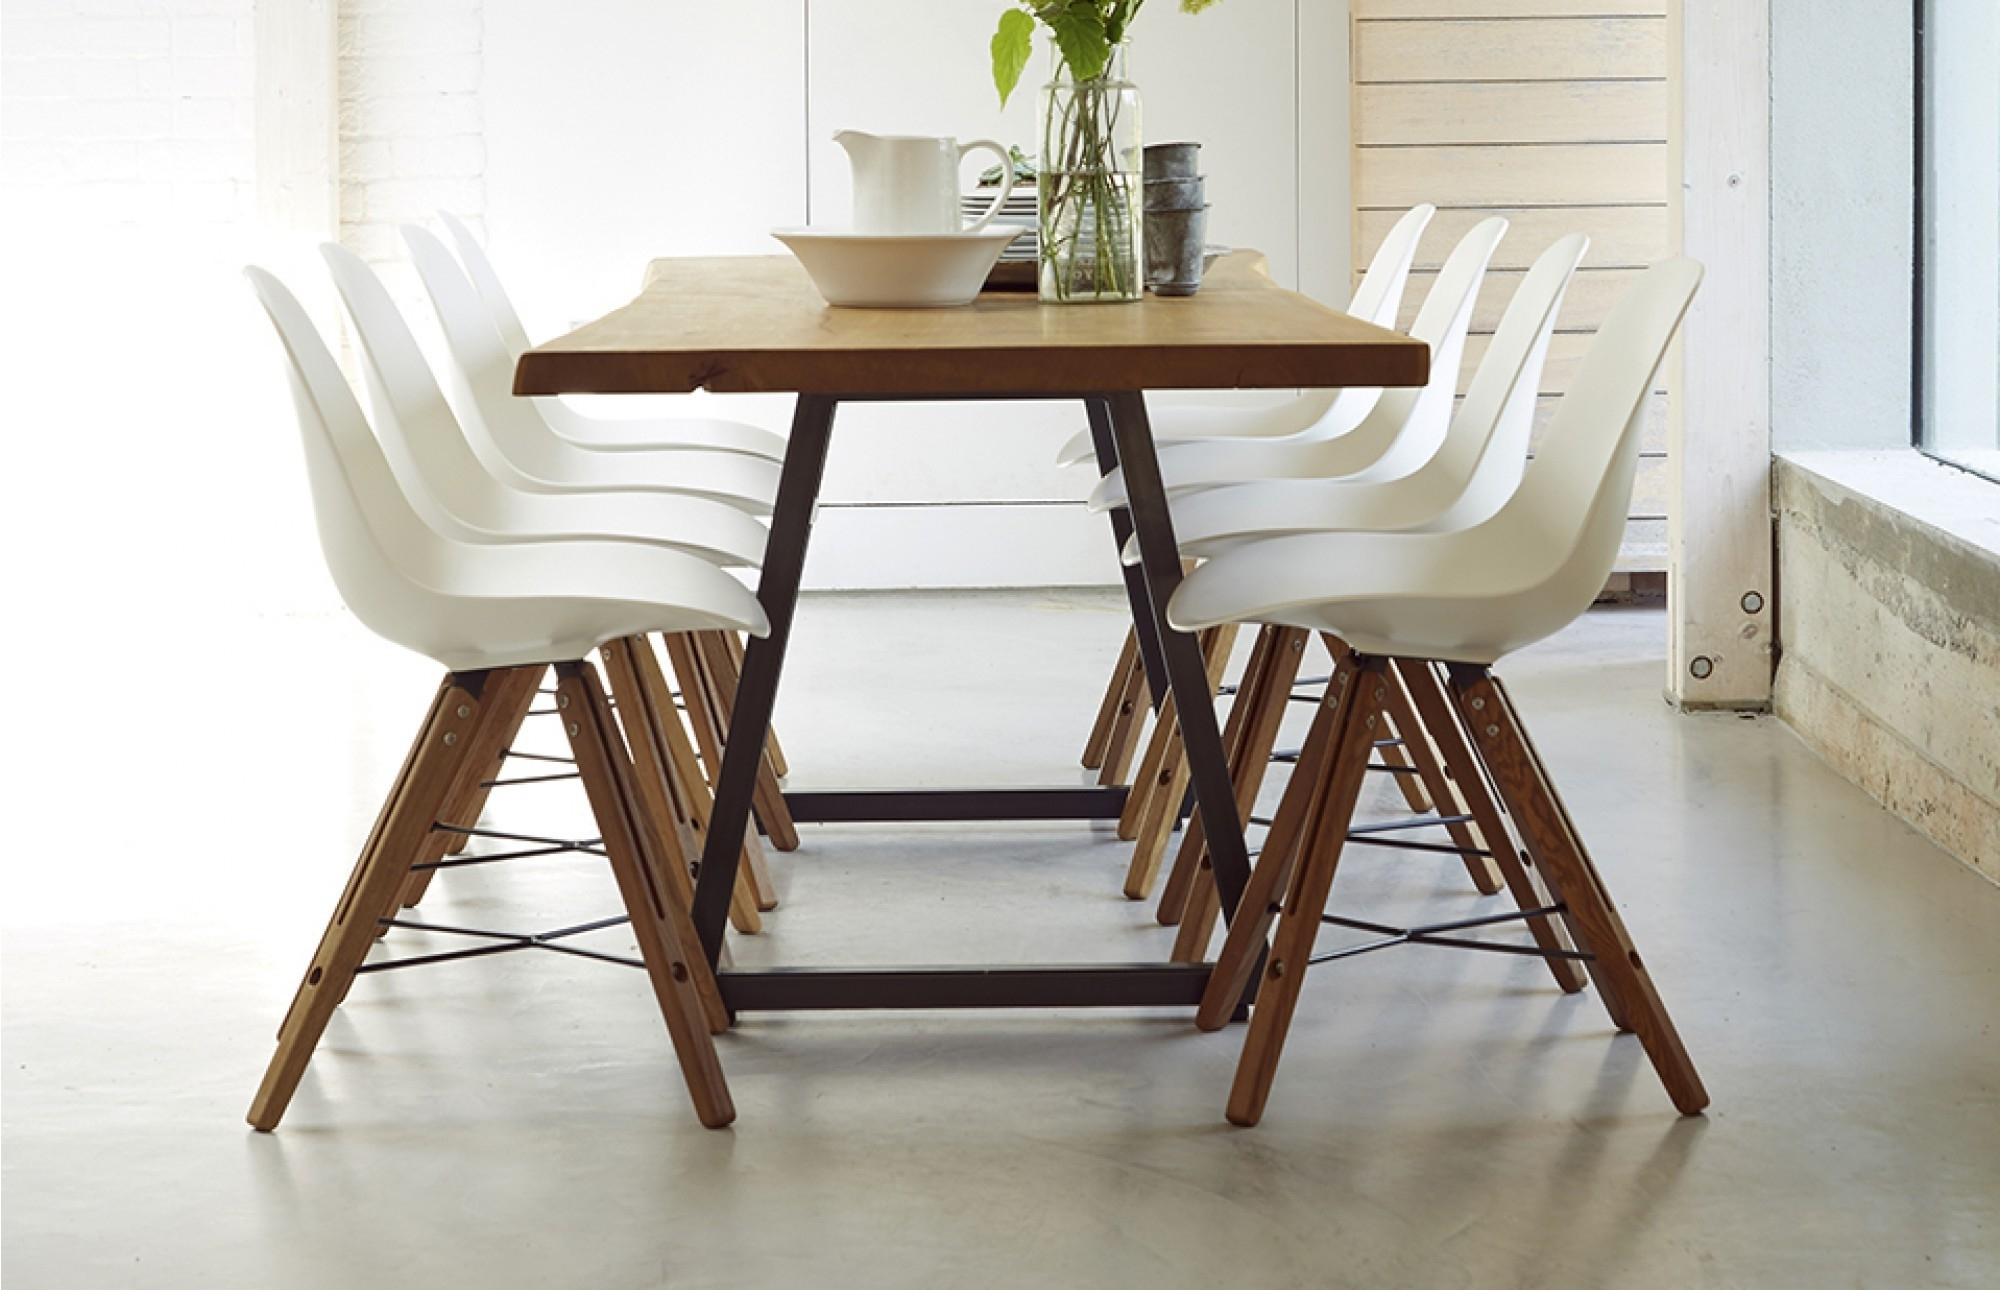 Most Popular Oak Extending Dining Table And 8 Chairs Fresh Dining Room Furniture Pertaining To Extending Dining Tables And 8 Chairs (View 14 of 25)